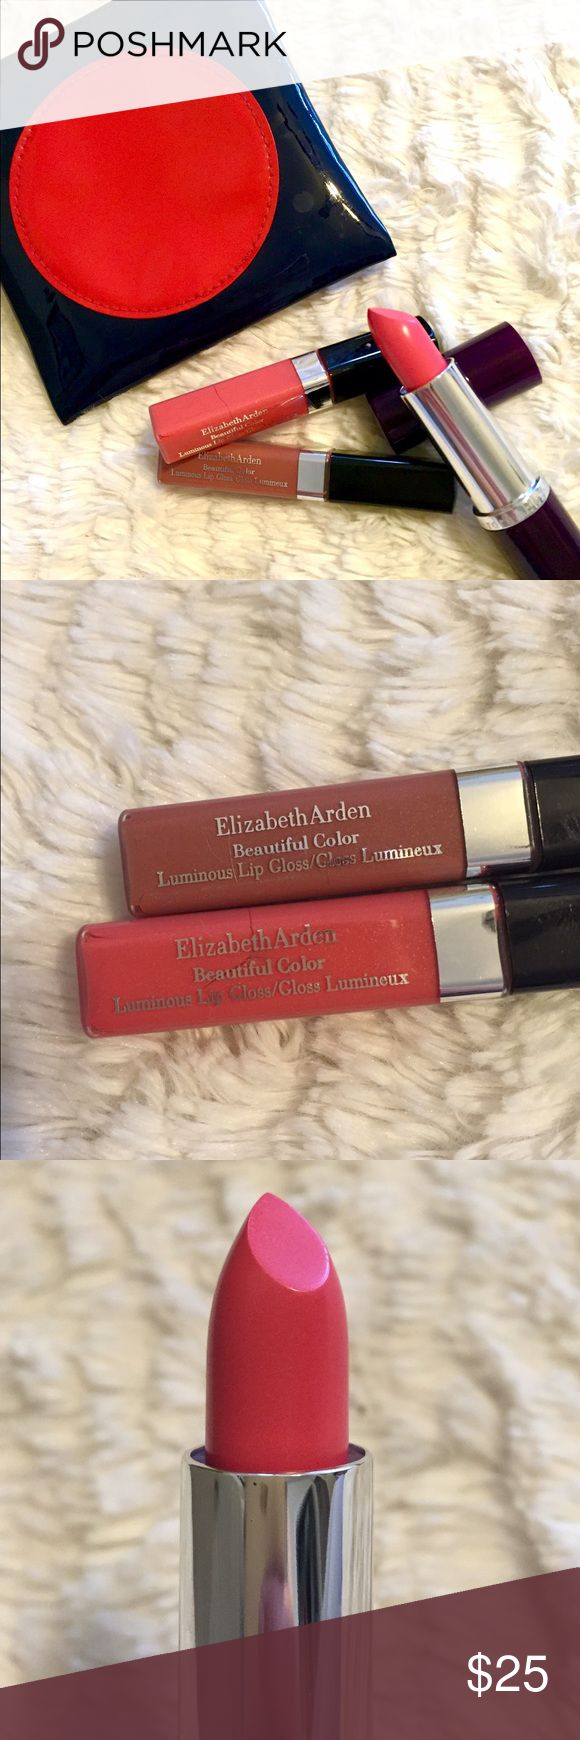 Elizabeth Arden Lip Kit + Estee Lauder Pouch 2 lip glosses and 1 lipstick never been used brand new, plus Estée Lauder pouch to carry it in.  Colors are Rosegold, Sunset, and Pretty Pink.  Great colors for summer!   Elizabeth Arden Makeup Lip Balm & Gloss